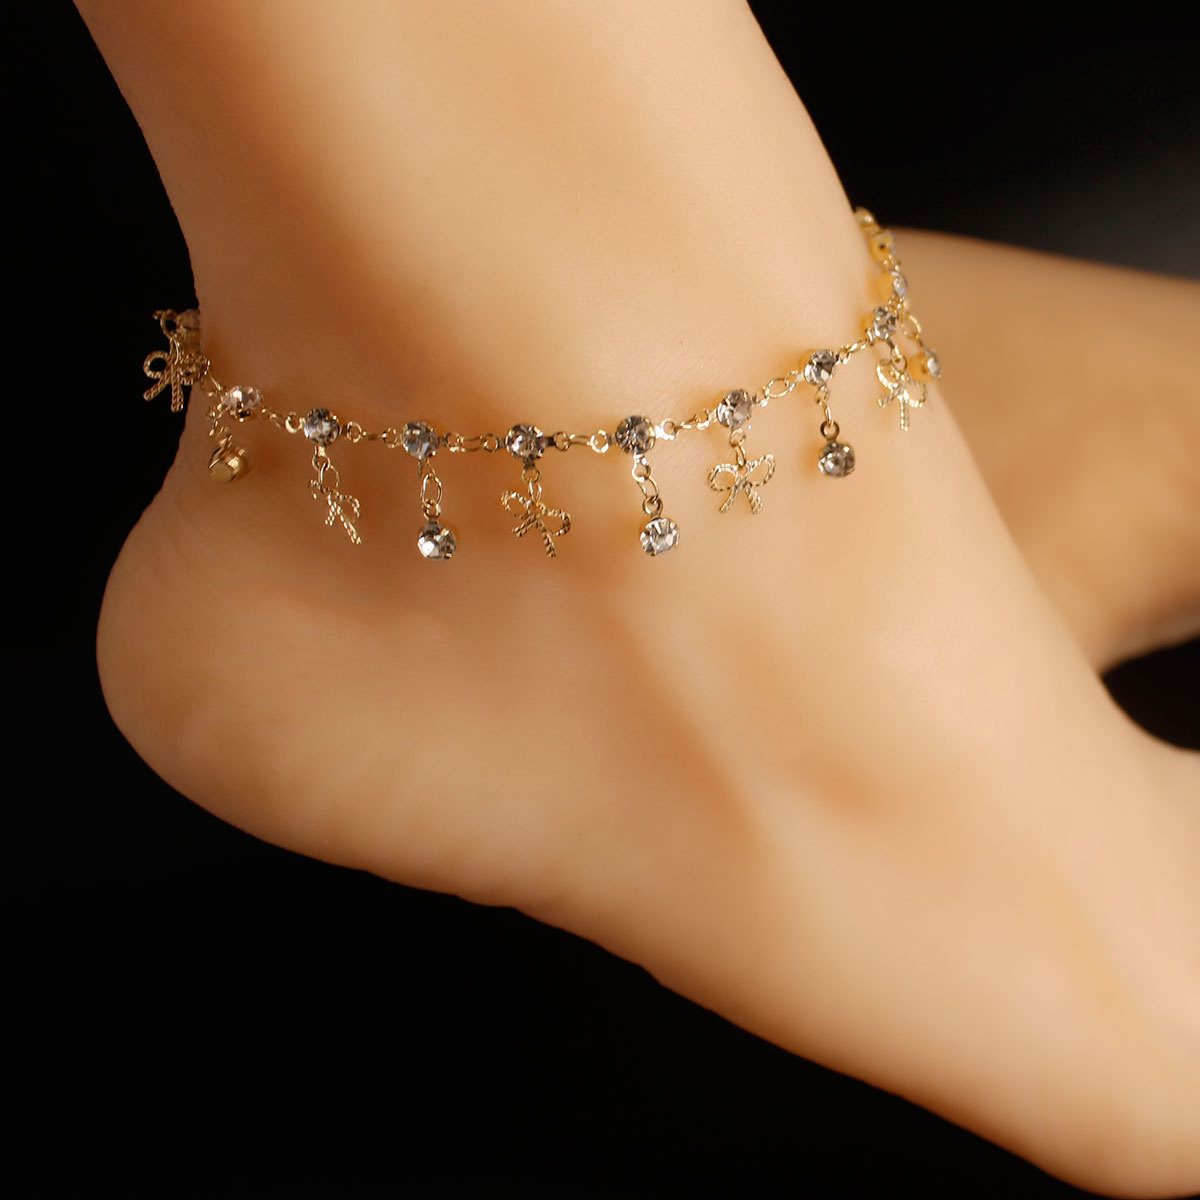 Ladies Fashion Zircon Bow Anklet Barefoot Beach Holiday Foot Jewelry Gift